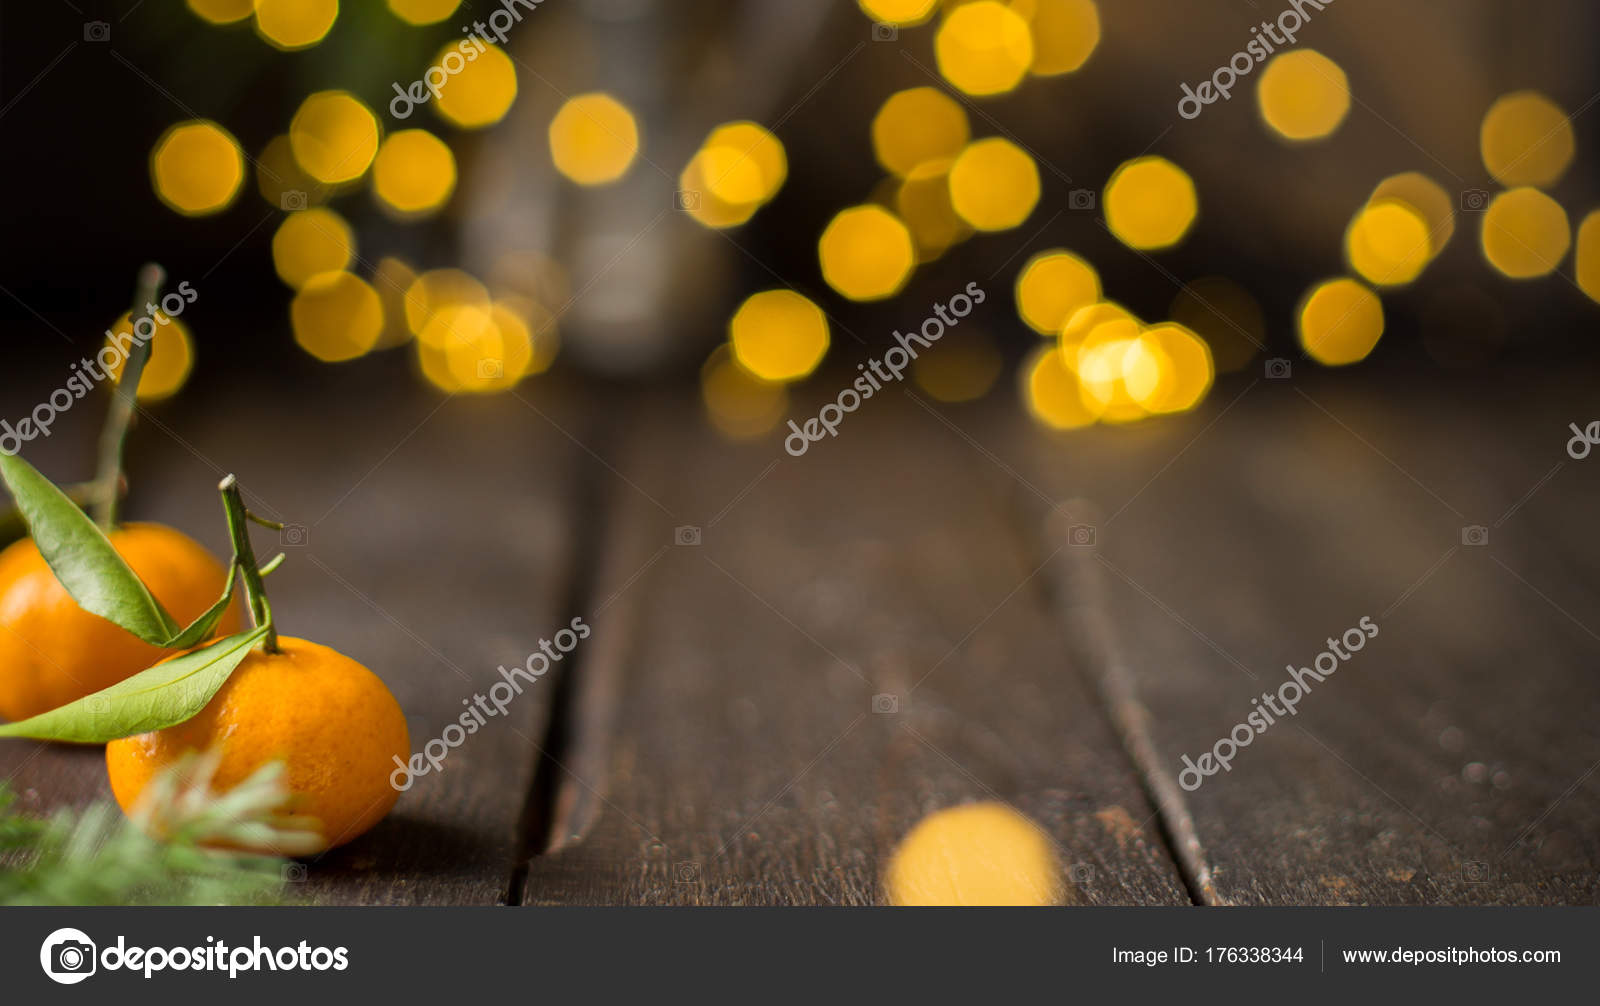 Christmas Tangerine Mood Fresh Tangerines Wooden Vintage Background Lights Best Stock Photo